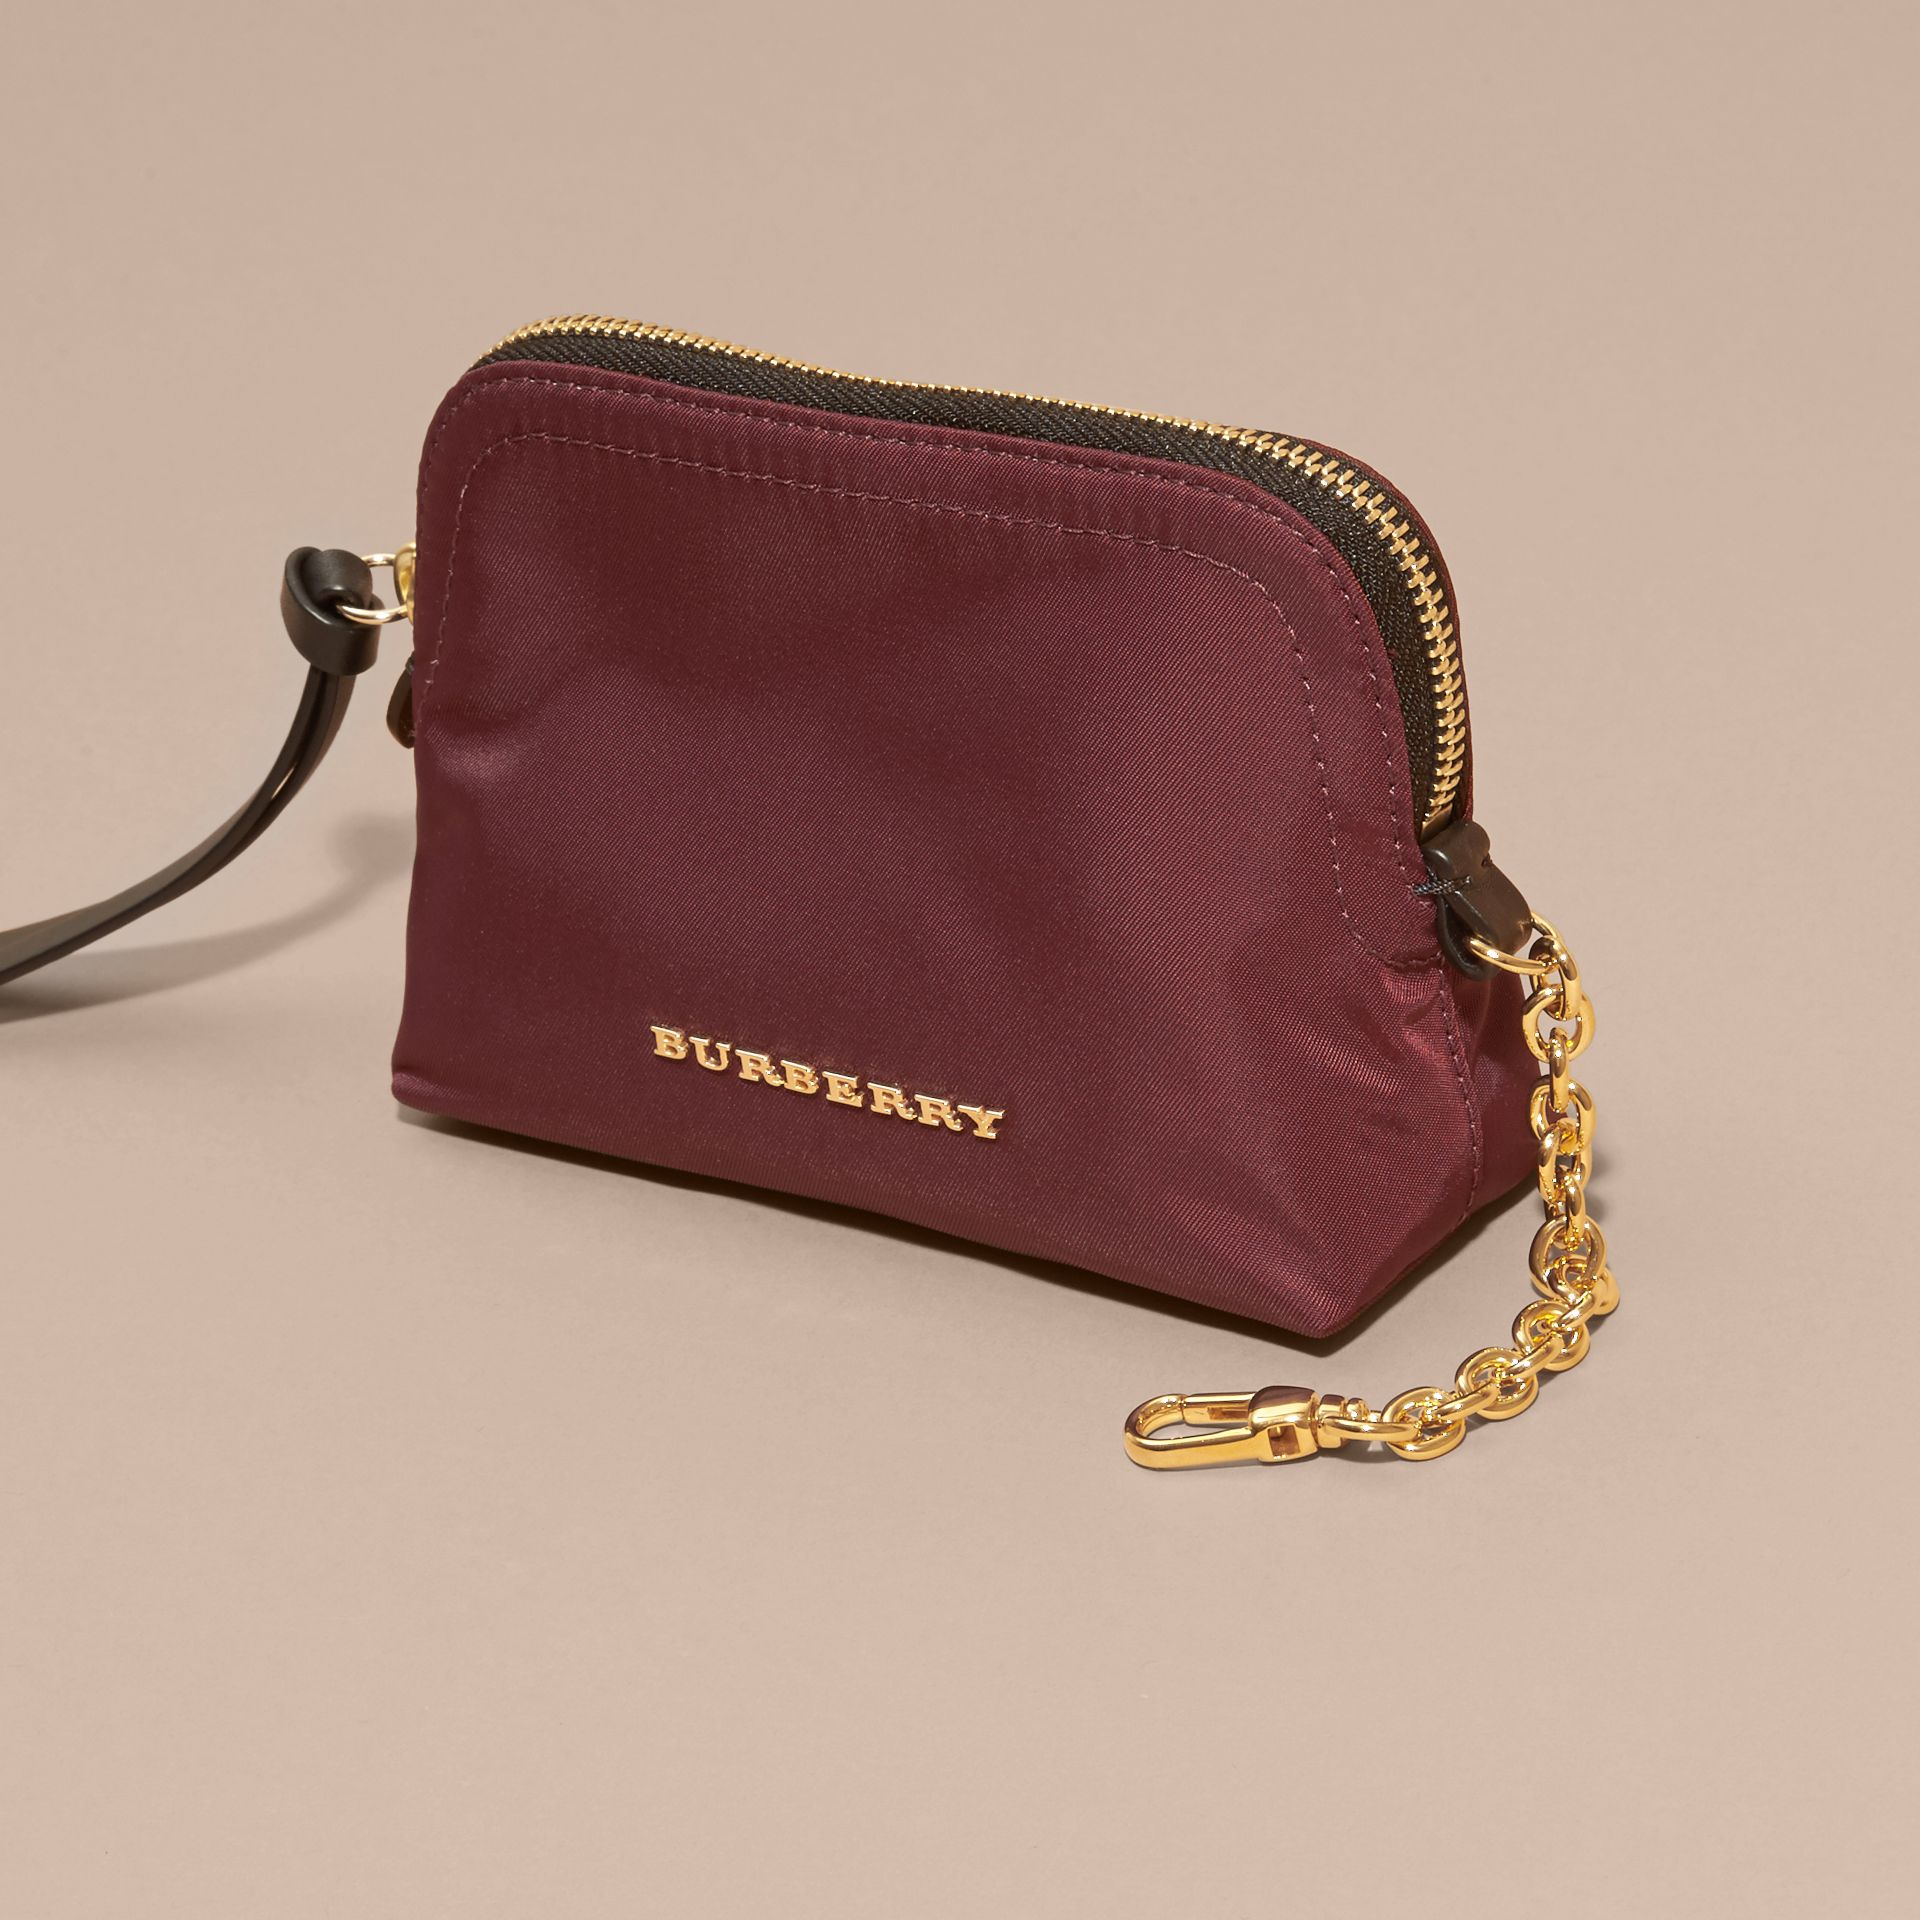 Small Zip-top Technical Nylon Pouch in Burgundy Red - Women | Burberry - gallery image 3